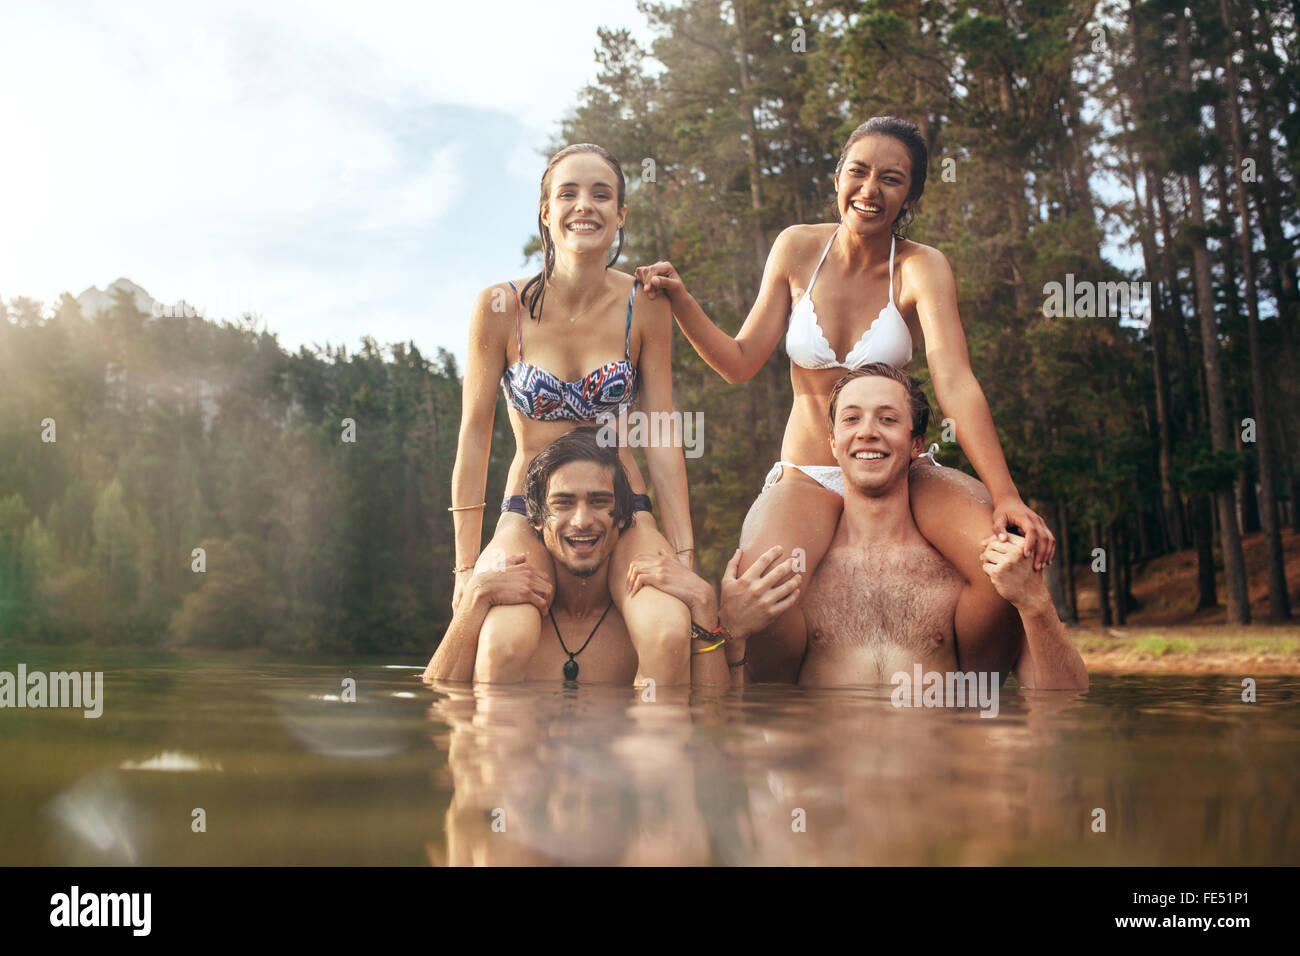 Portrait of young  men carrying their girlfriends on shoulders. Happy young couples enjoying a day at the lake. - Stock Image